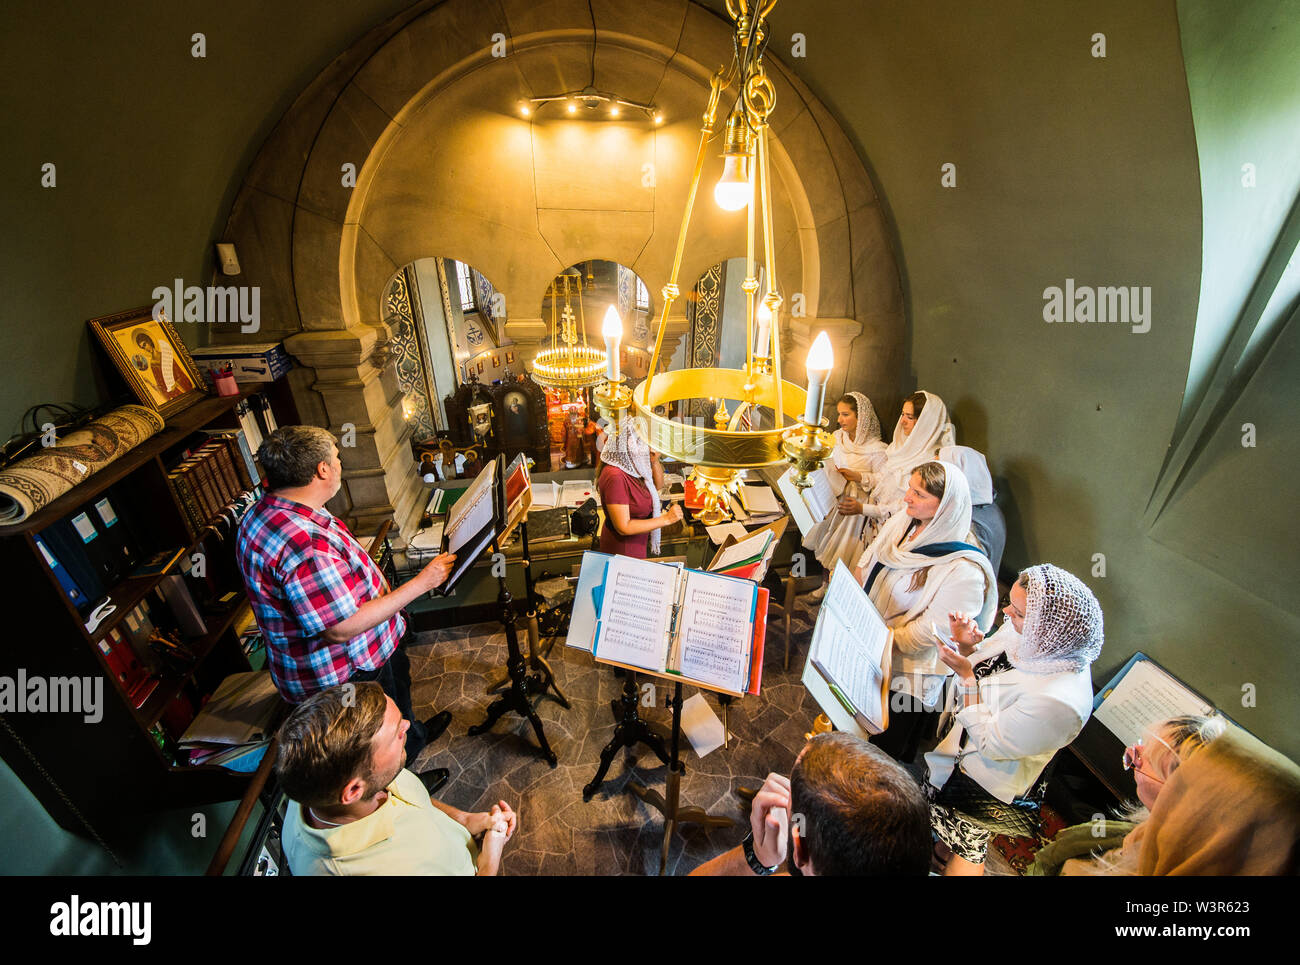 Darmstadt, Germany. 17th July, 2019. A choir sings during a church service in the Russian Orthodox Church on Mathildenhöhe. The service commemorates the murder of the last Russian tsar family on 17 July 1918. Then, symbolically, bell models were handed over for the seven new bells. The new bells, which are not yet completely finished, will be consecrated at a later date. Credit: Andreas Arnold/dpa/Alamy Live News - Stock Image